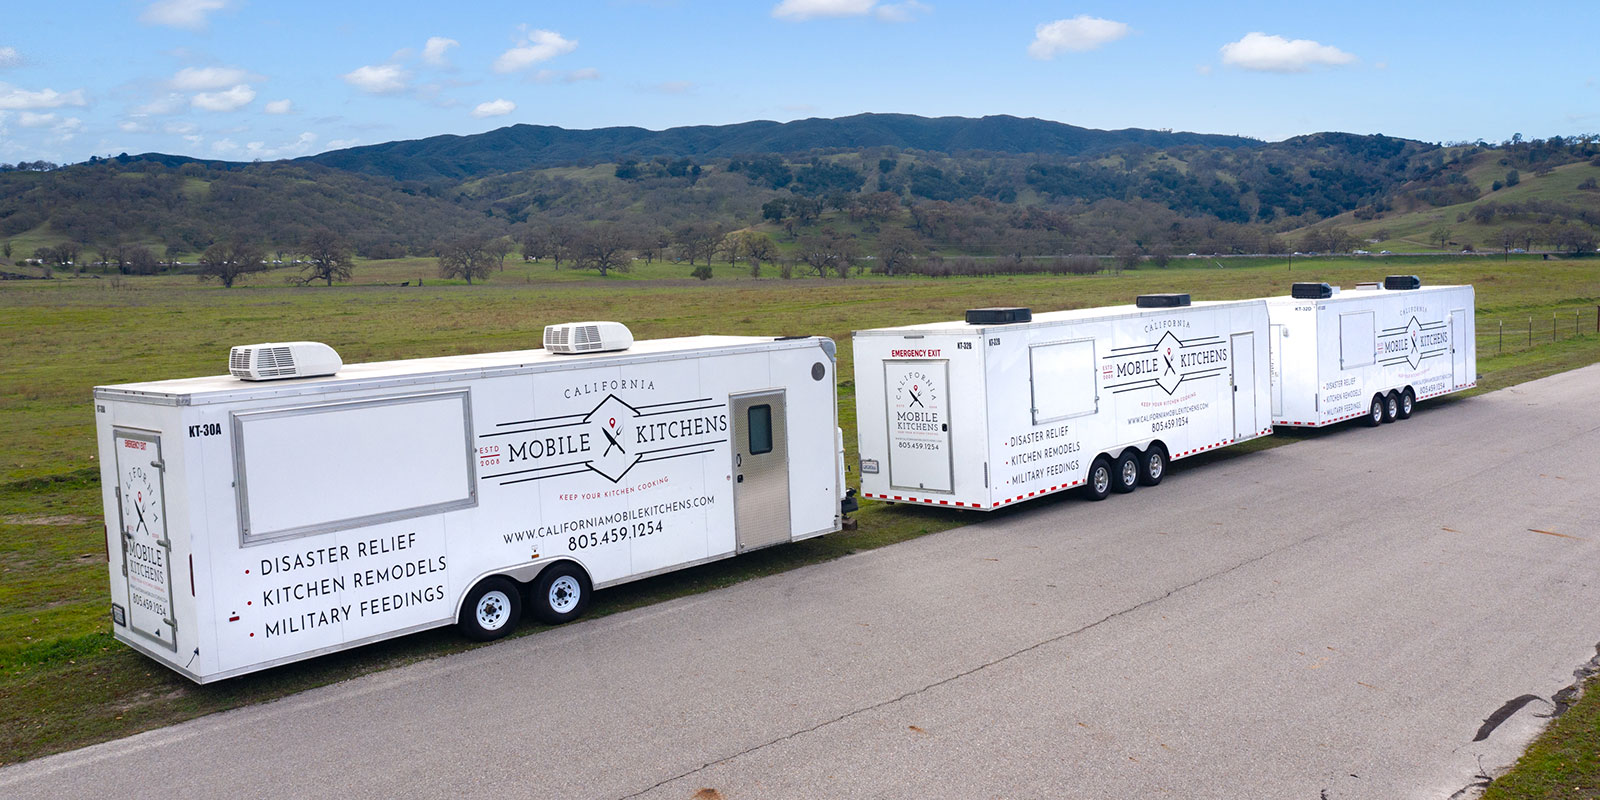 california-mobile-kitchens-lineup